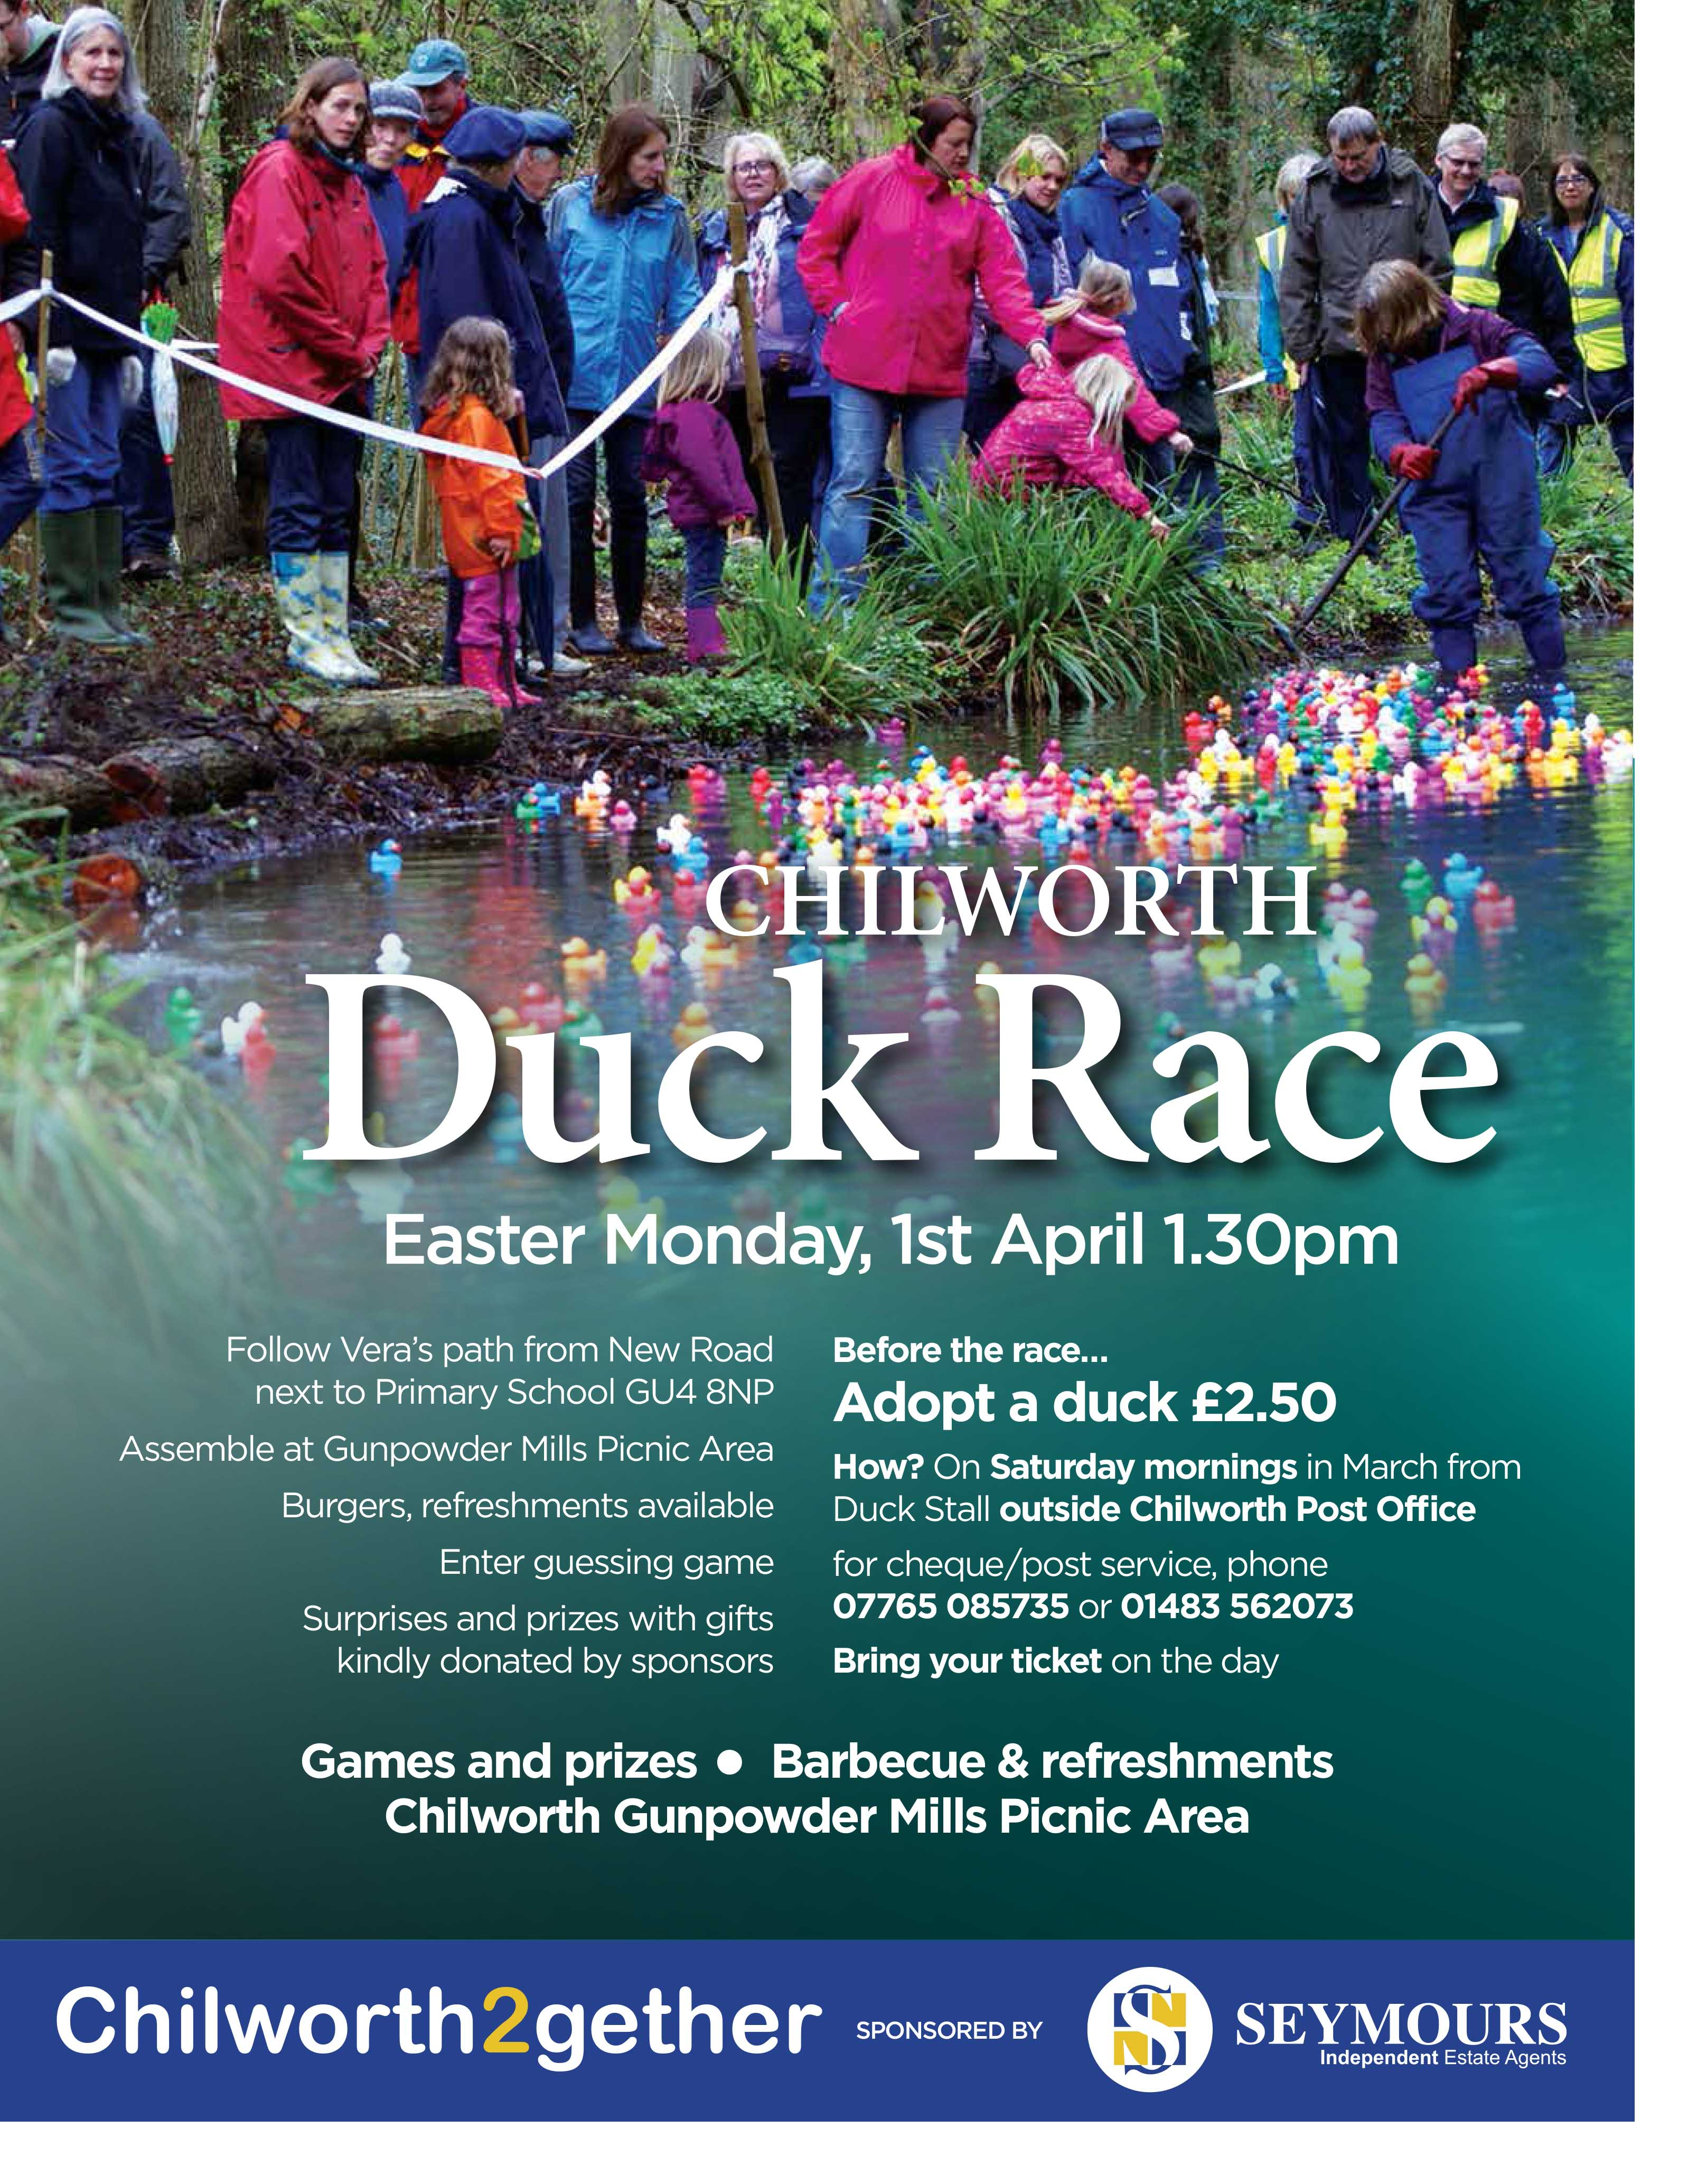 CHILWORTH2GETHER AND SEYMOURS PUT DUCKS UP FOR ADOPTION